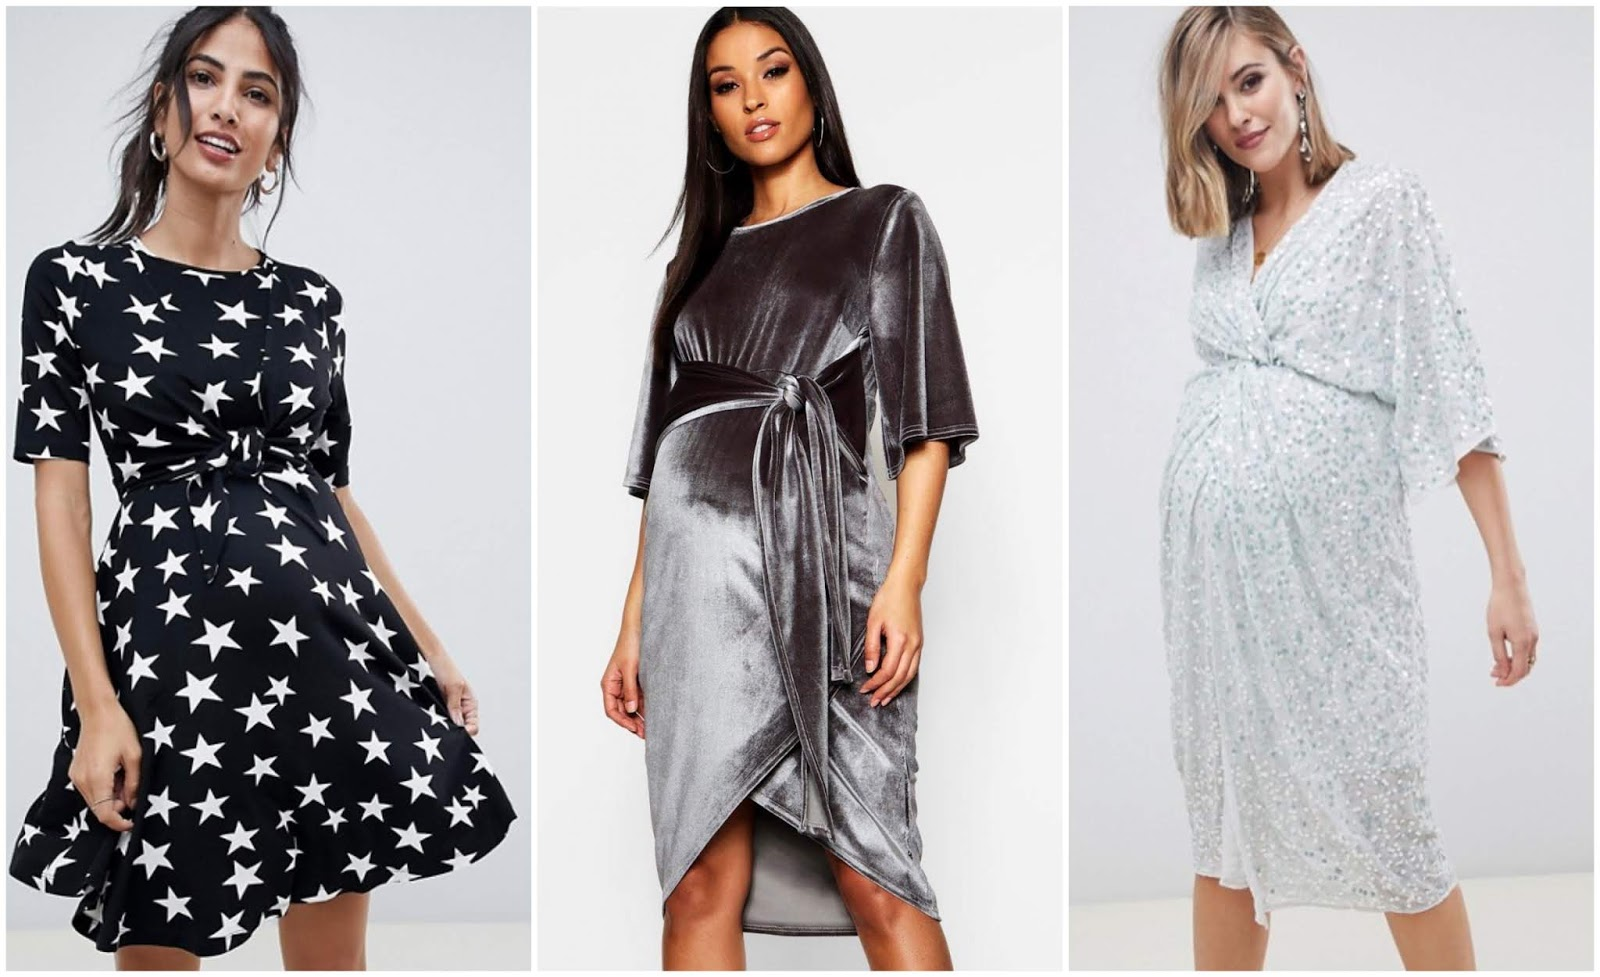 Maternity Christmas Dress.Festive Maternity Party Wear And A Christmas Gift Guide For